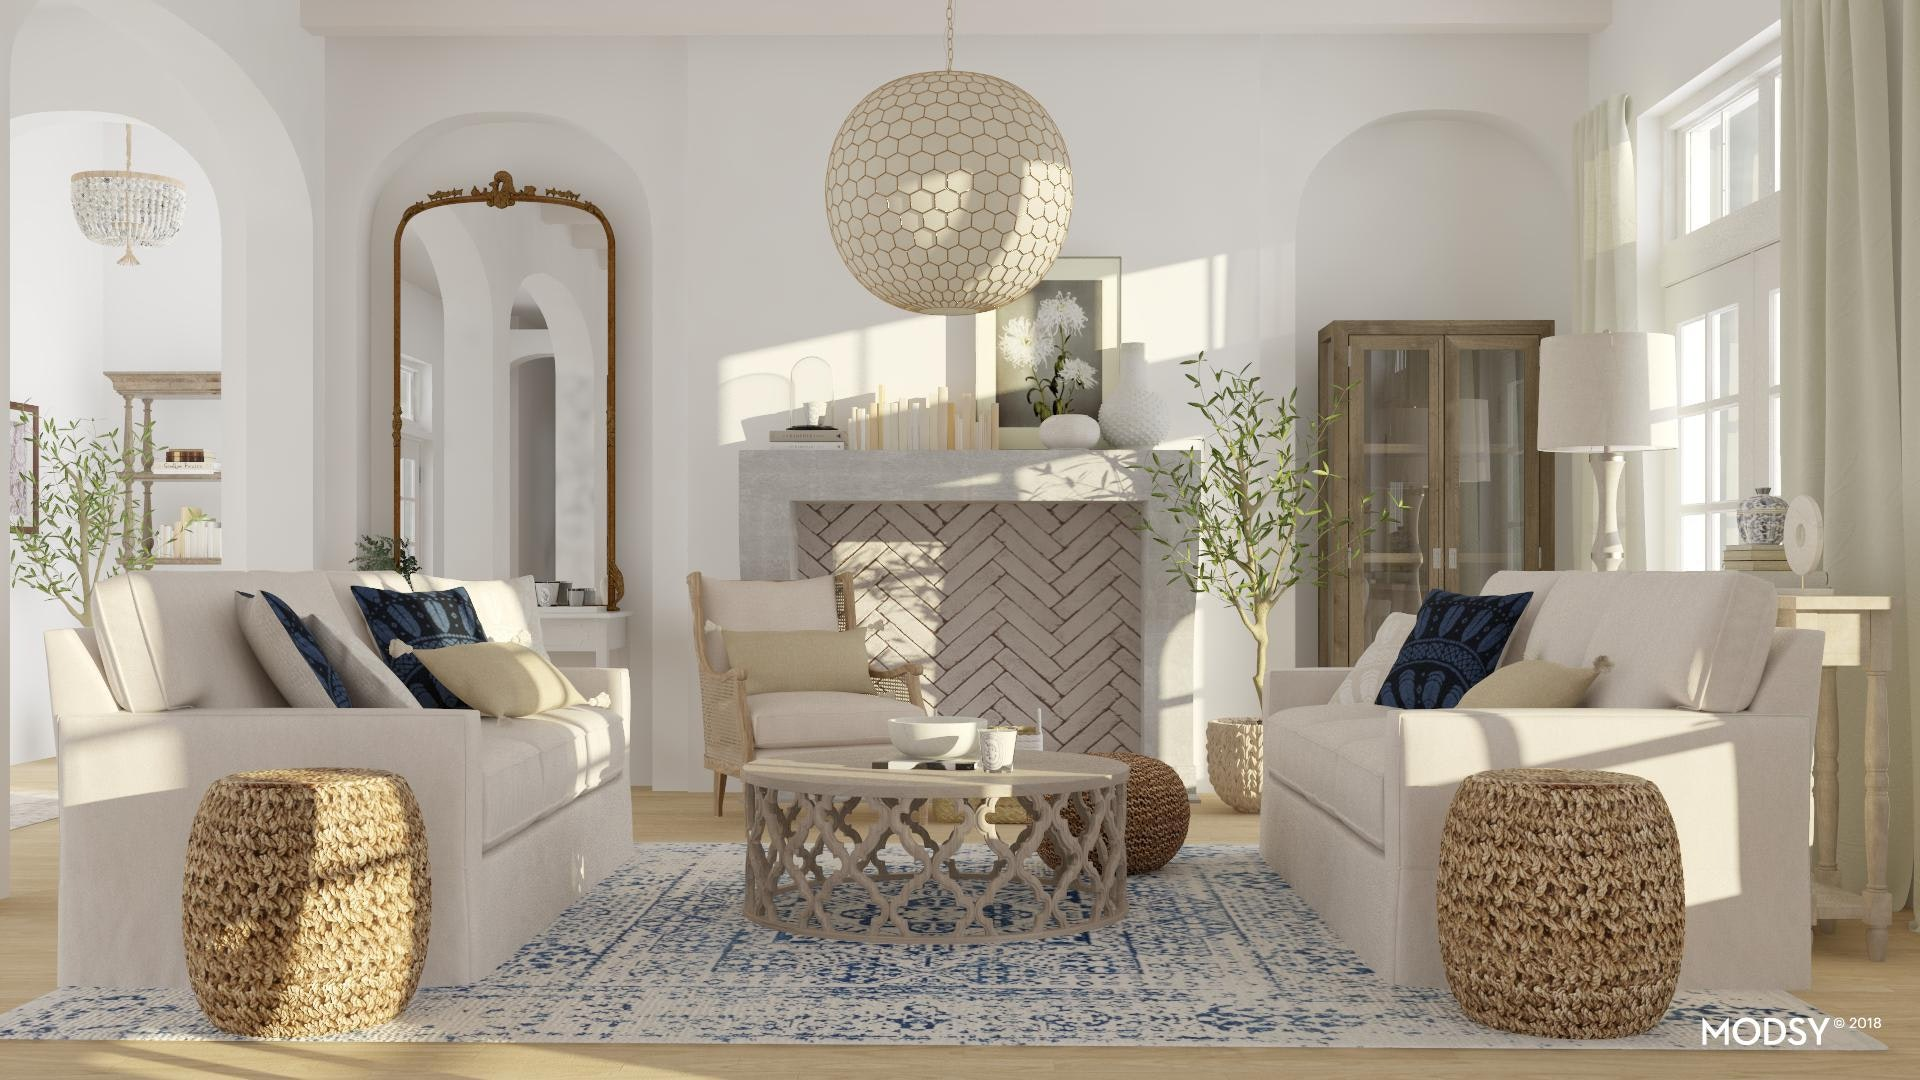 Arch Mirror Design Ideas And Styles From Modsy Designers